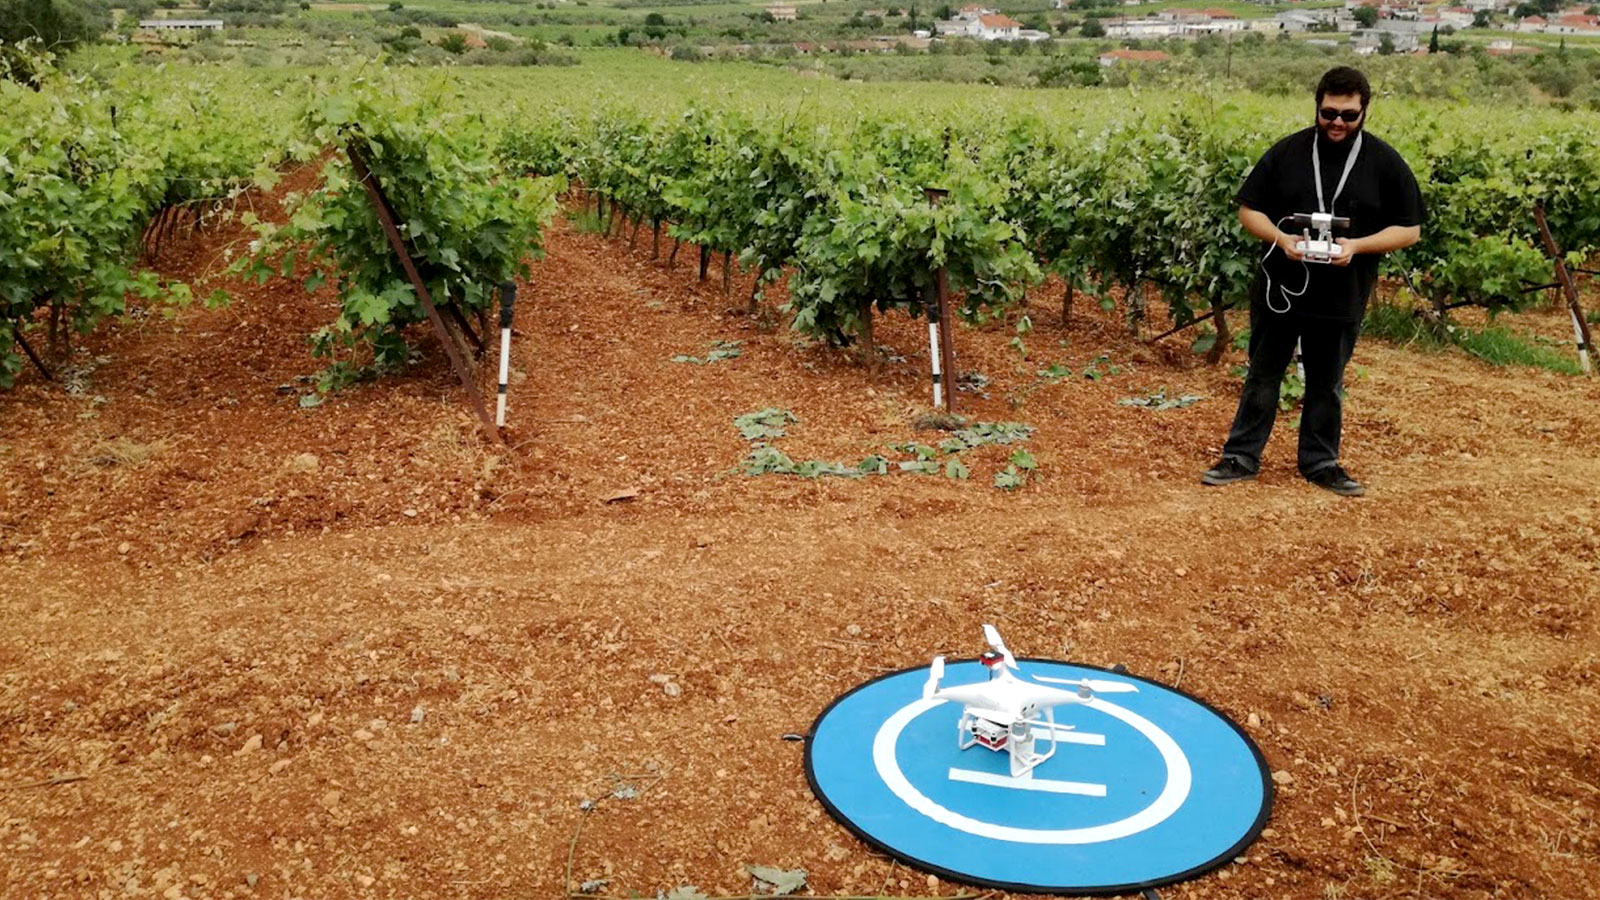 Mapping vineyards as a part of the BigDataGrapes project